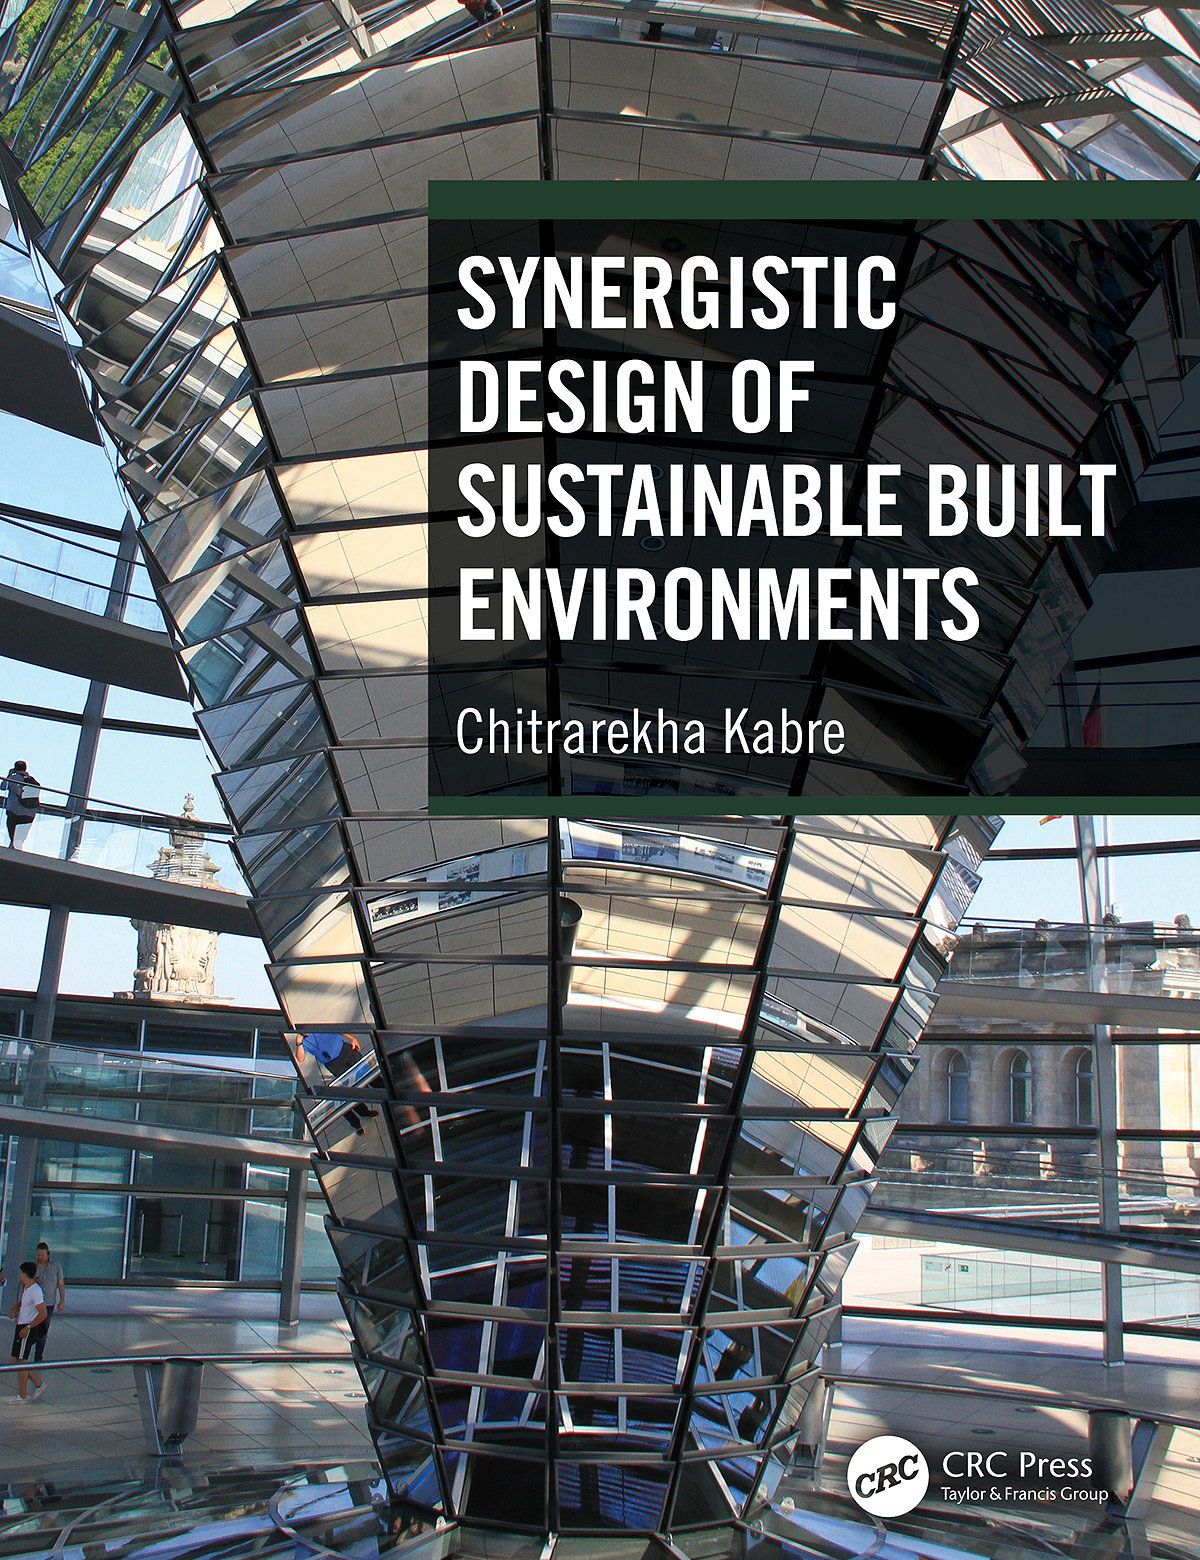 Synergistic Design of Sustainable Built Environments